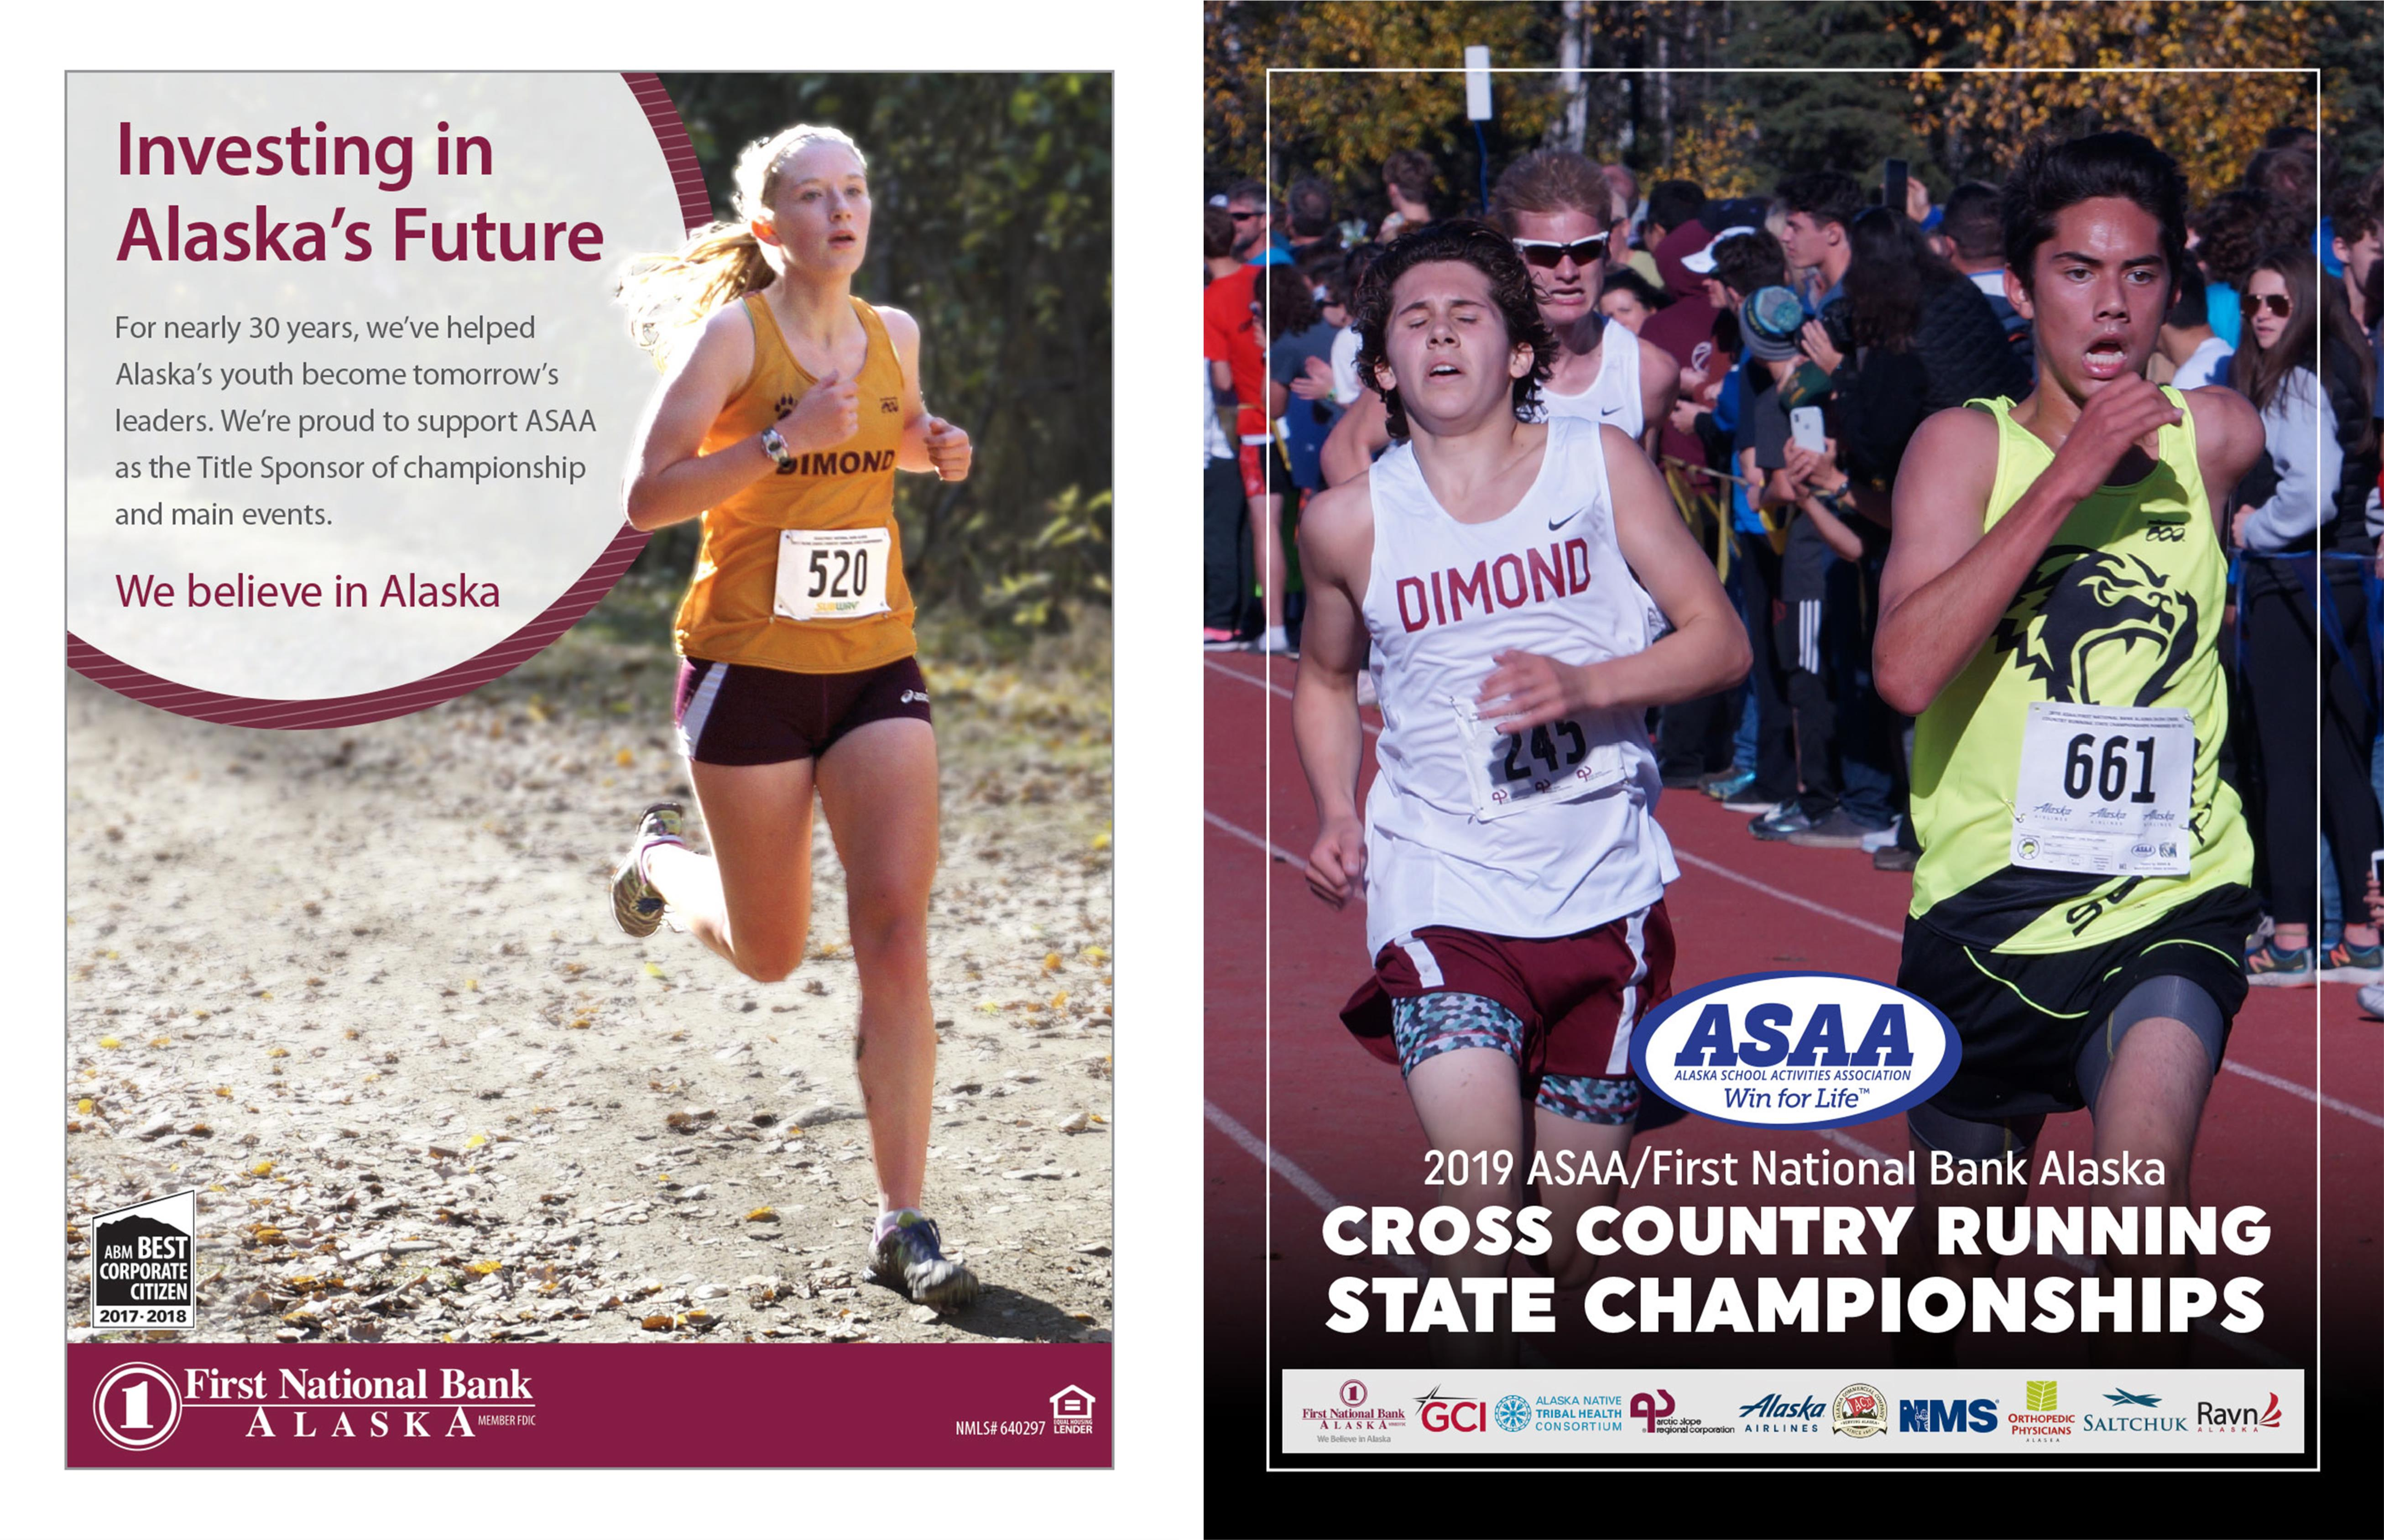 2019 ASAA/First National Bank Alaska Cross Country Running State Championships Program cover image